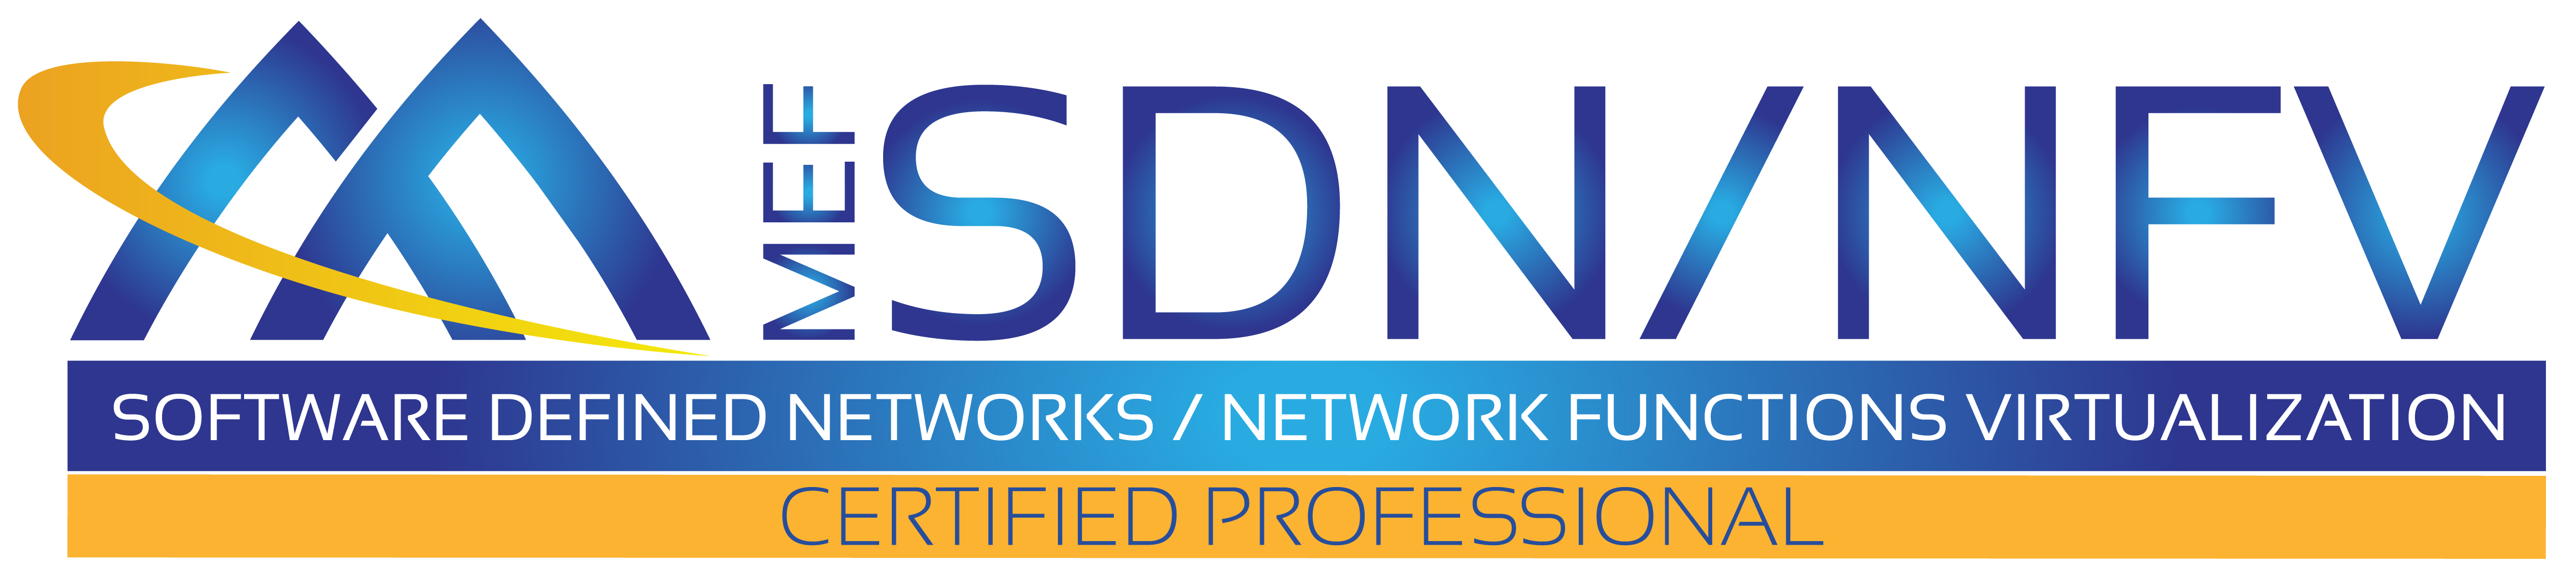 MEF-SDN/NFV Professional Certification